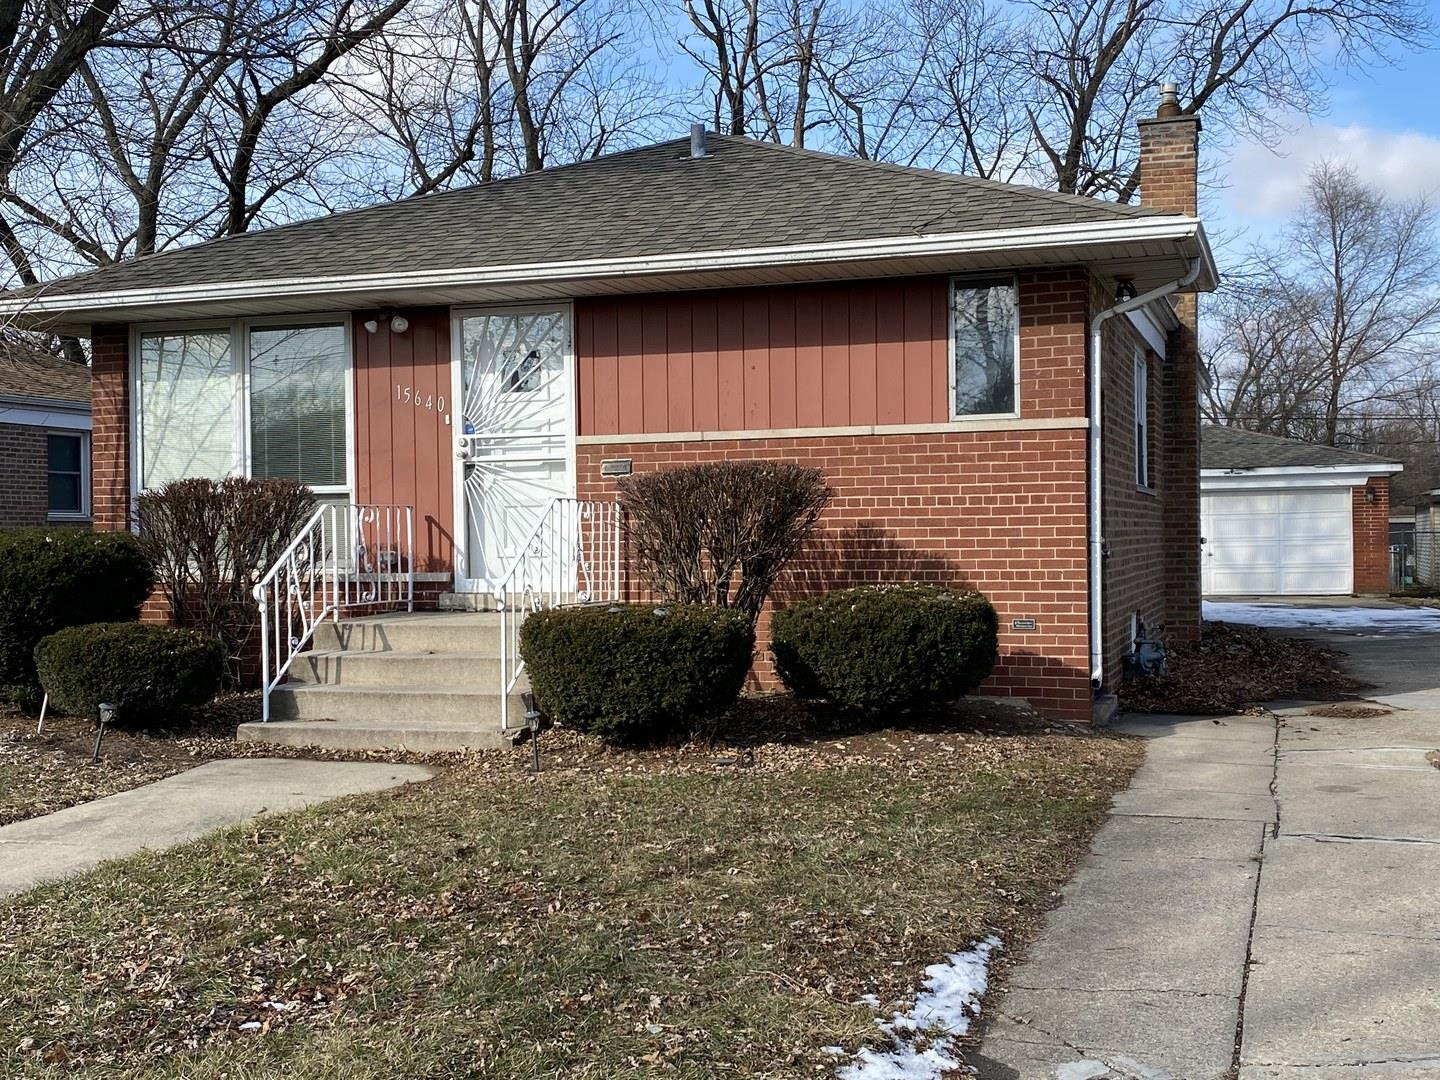 15640 Rose Drive, South Holland, IL 60473 - #: 10801611